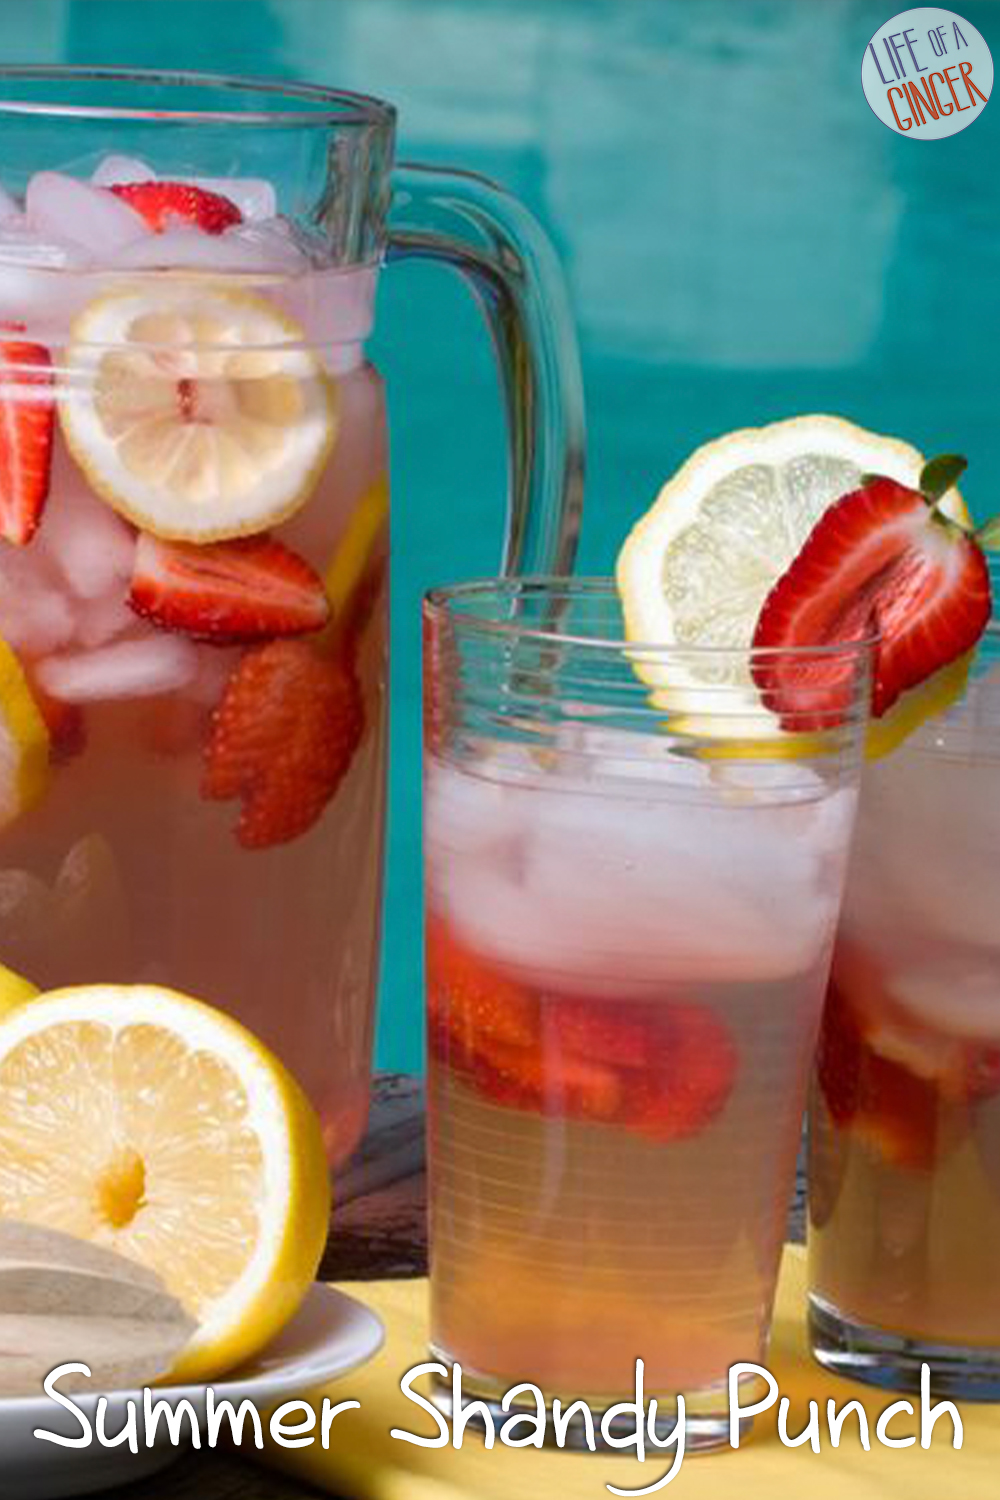 Summer Shandy Punch